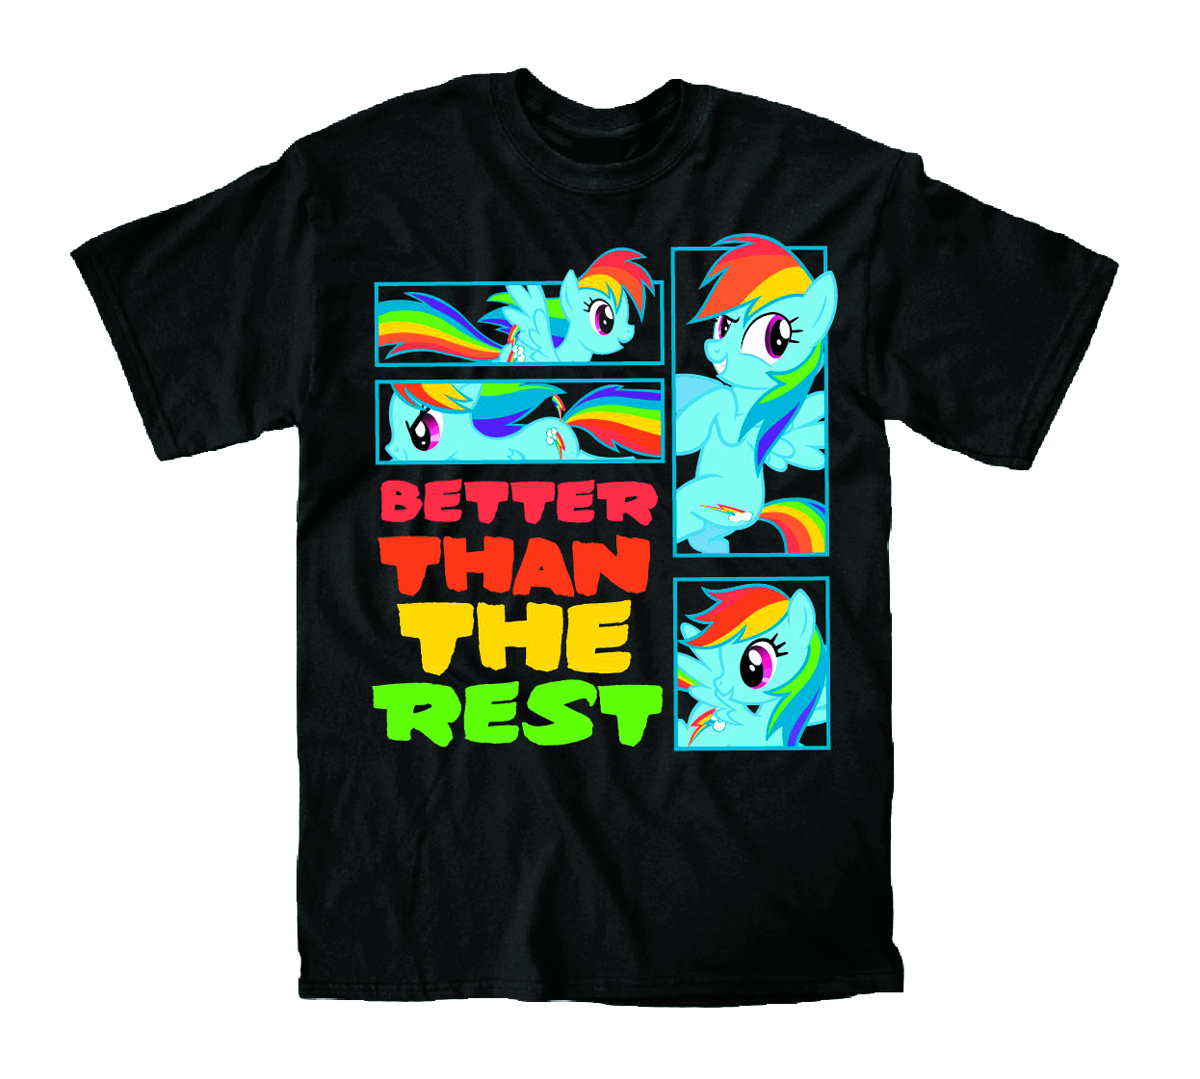 MY LITTLE PONY BETTER THAN THE REST BLK T/S MED